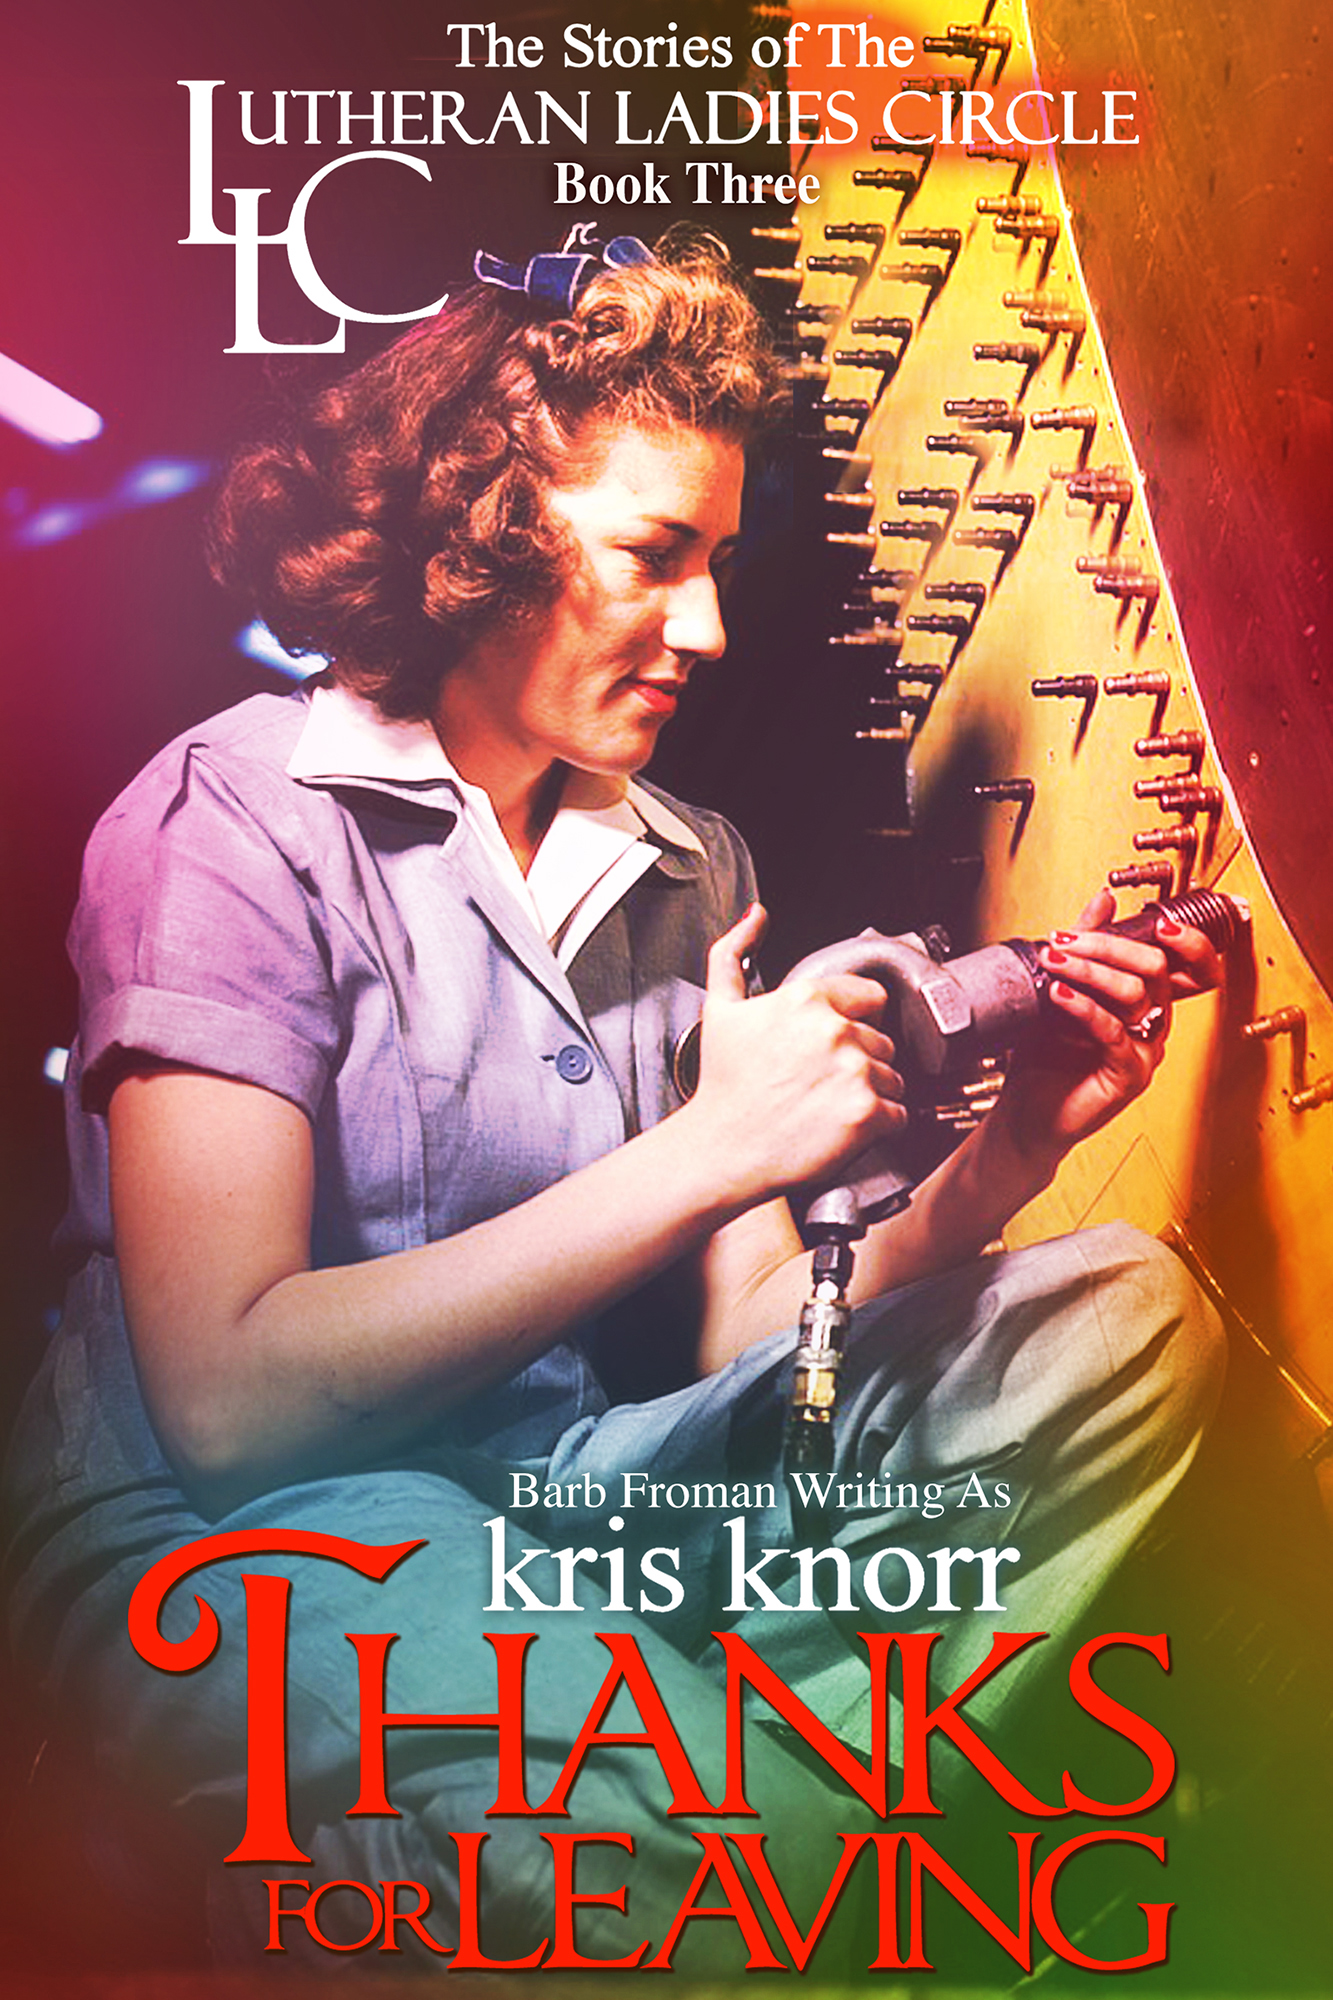 BK Froman writing as Kris Knorr